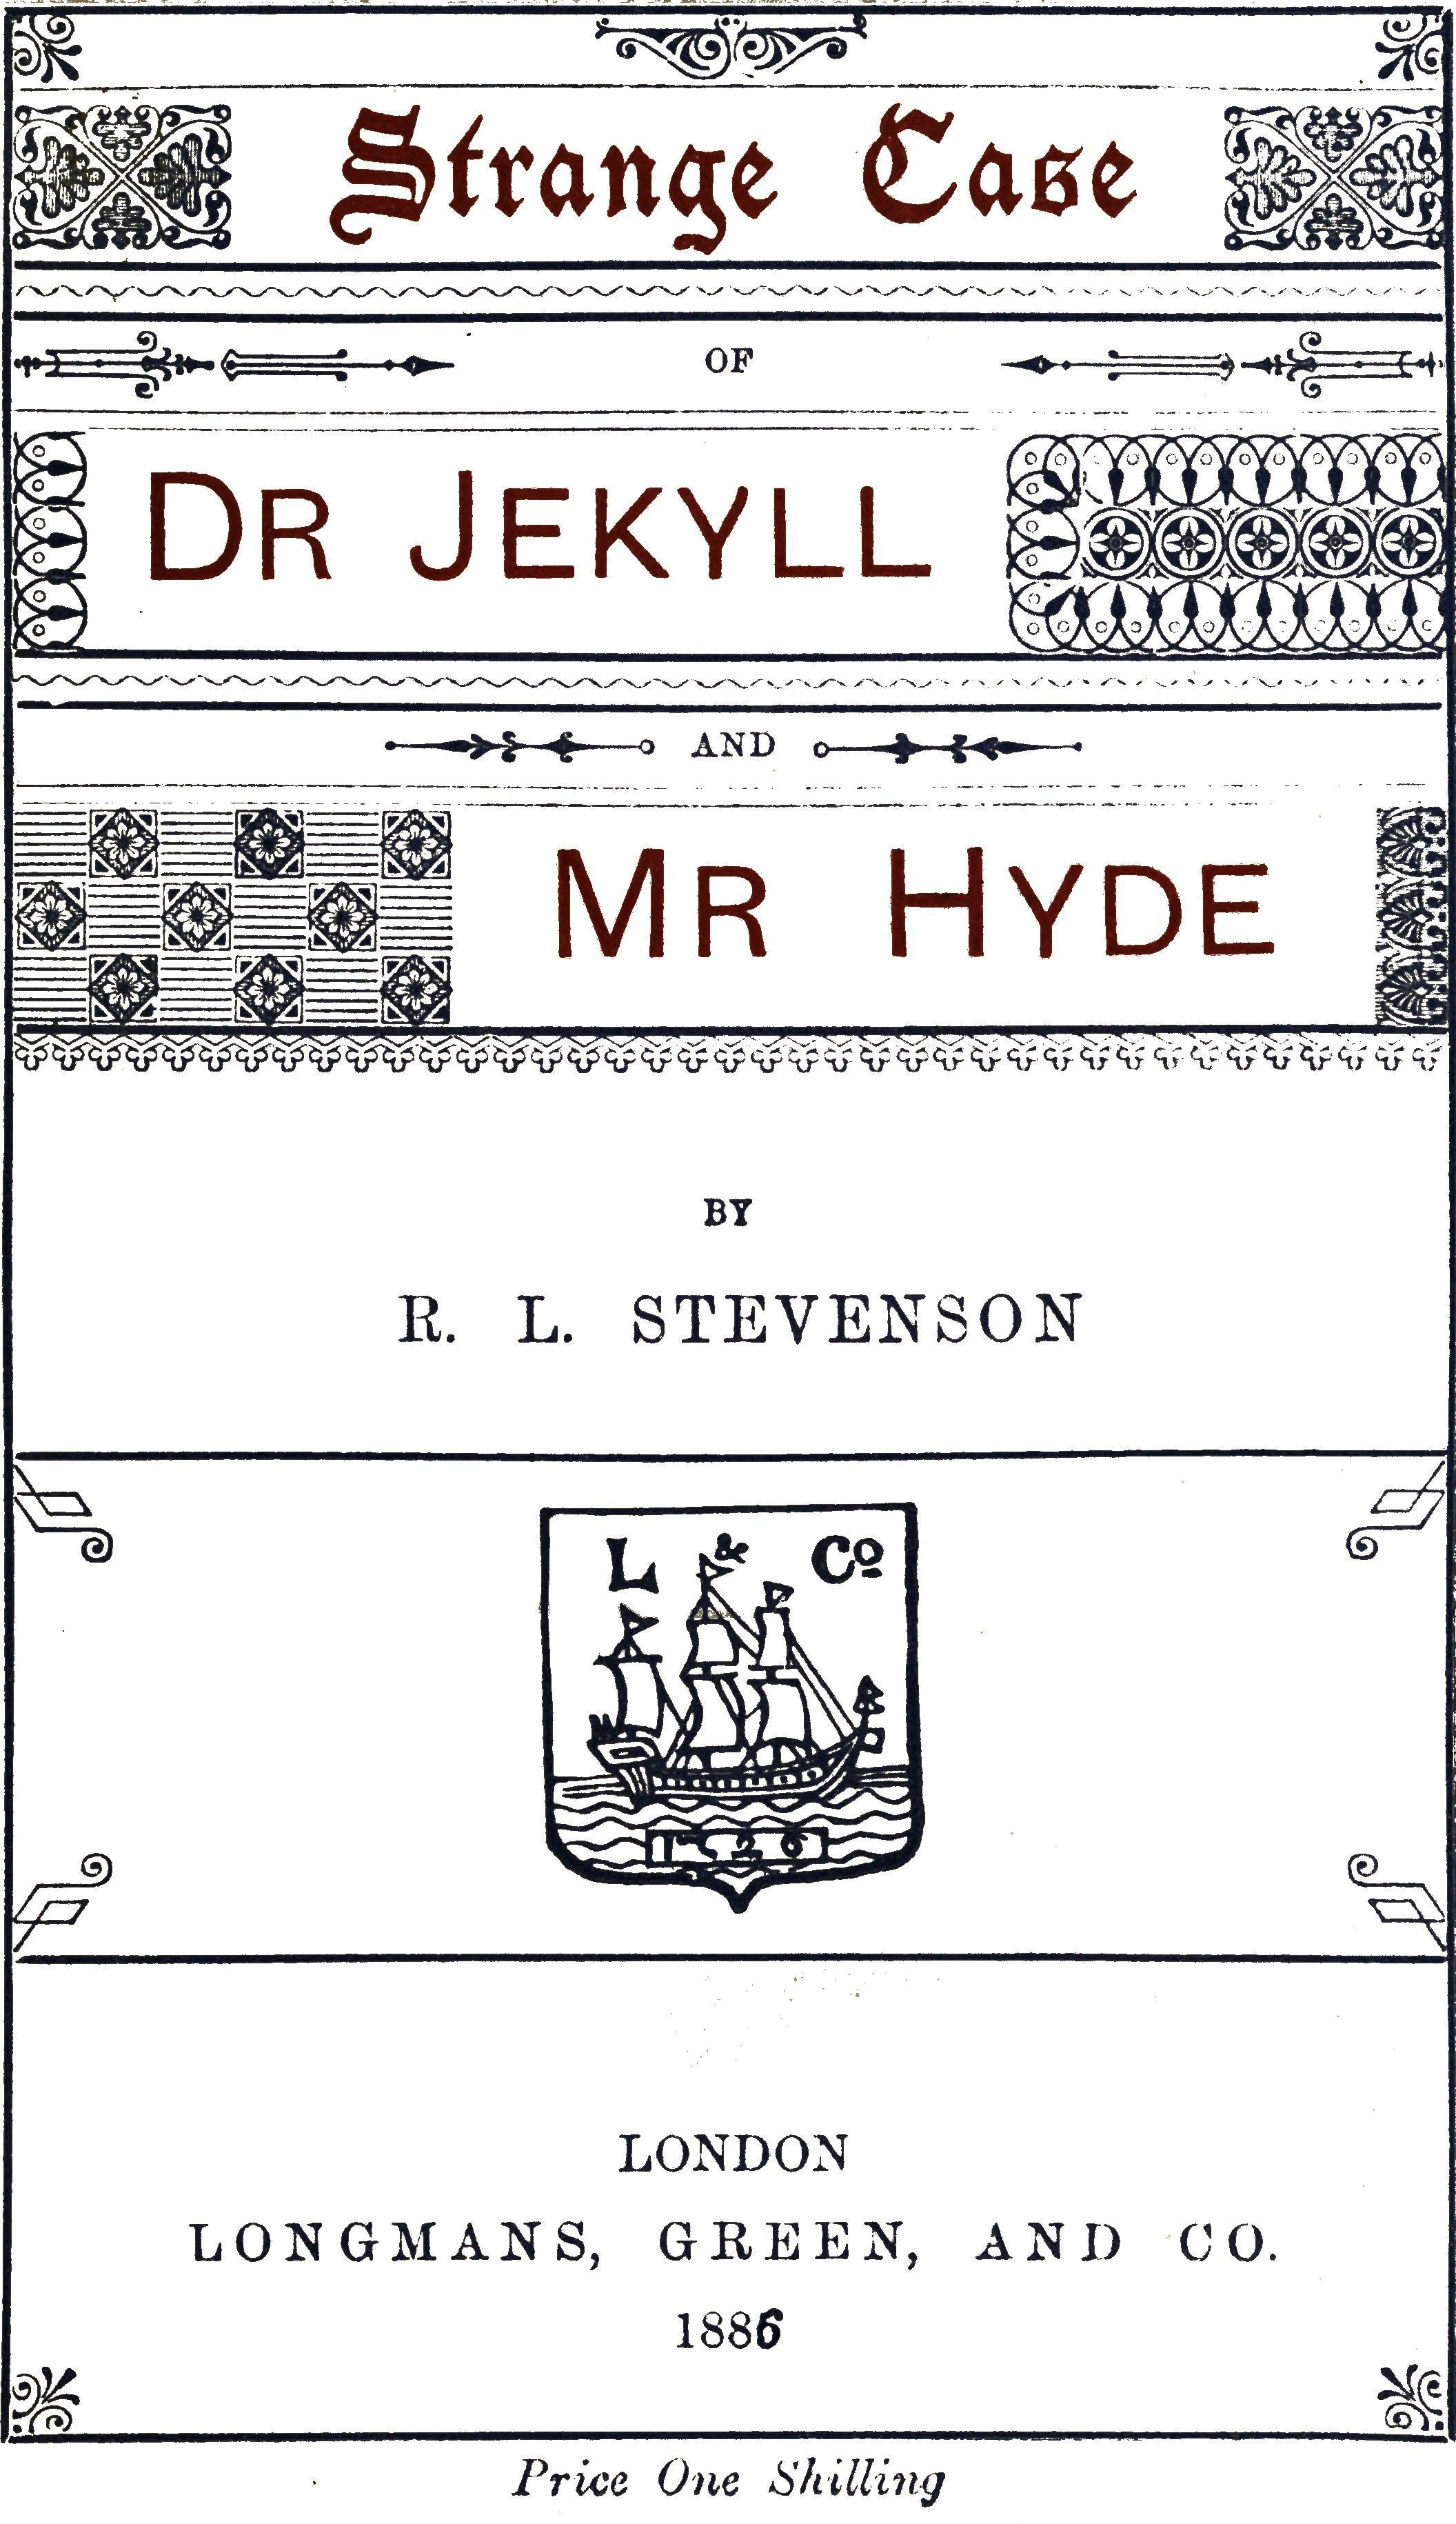 Strange Case of Dr Jekyll and Mr Hyde - Wikisource, the free online library